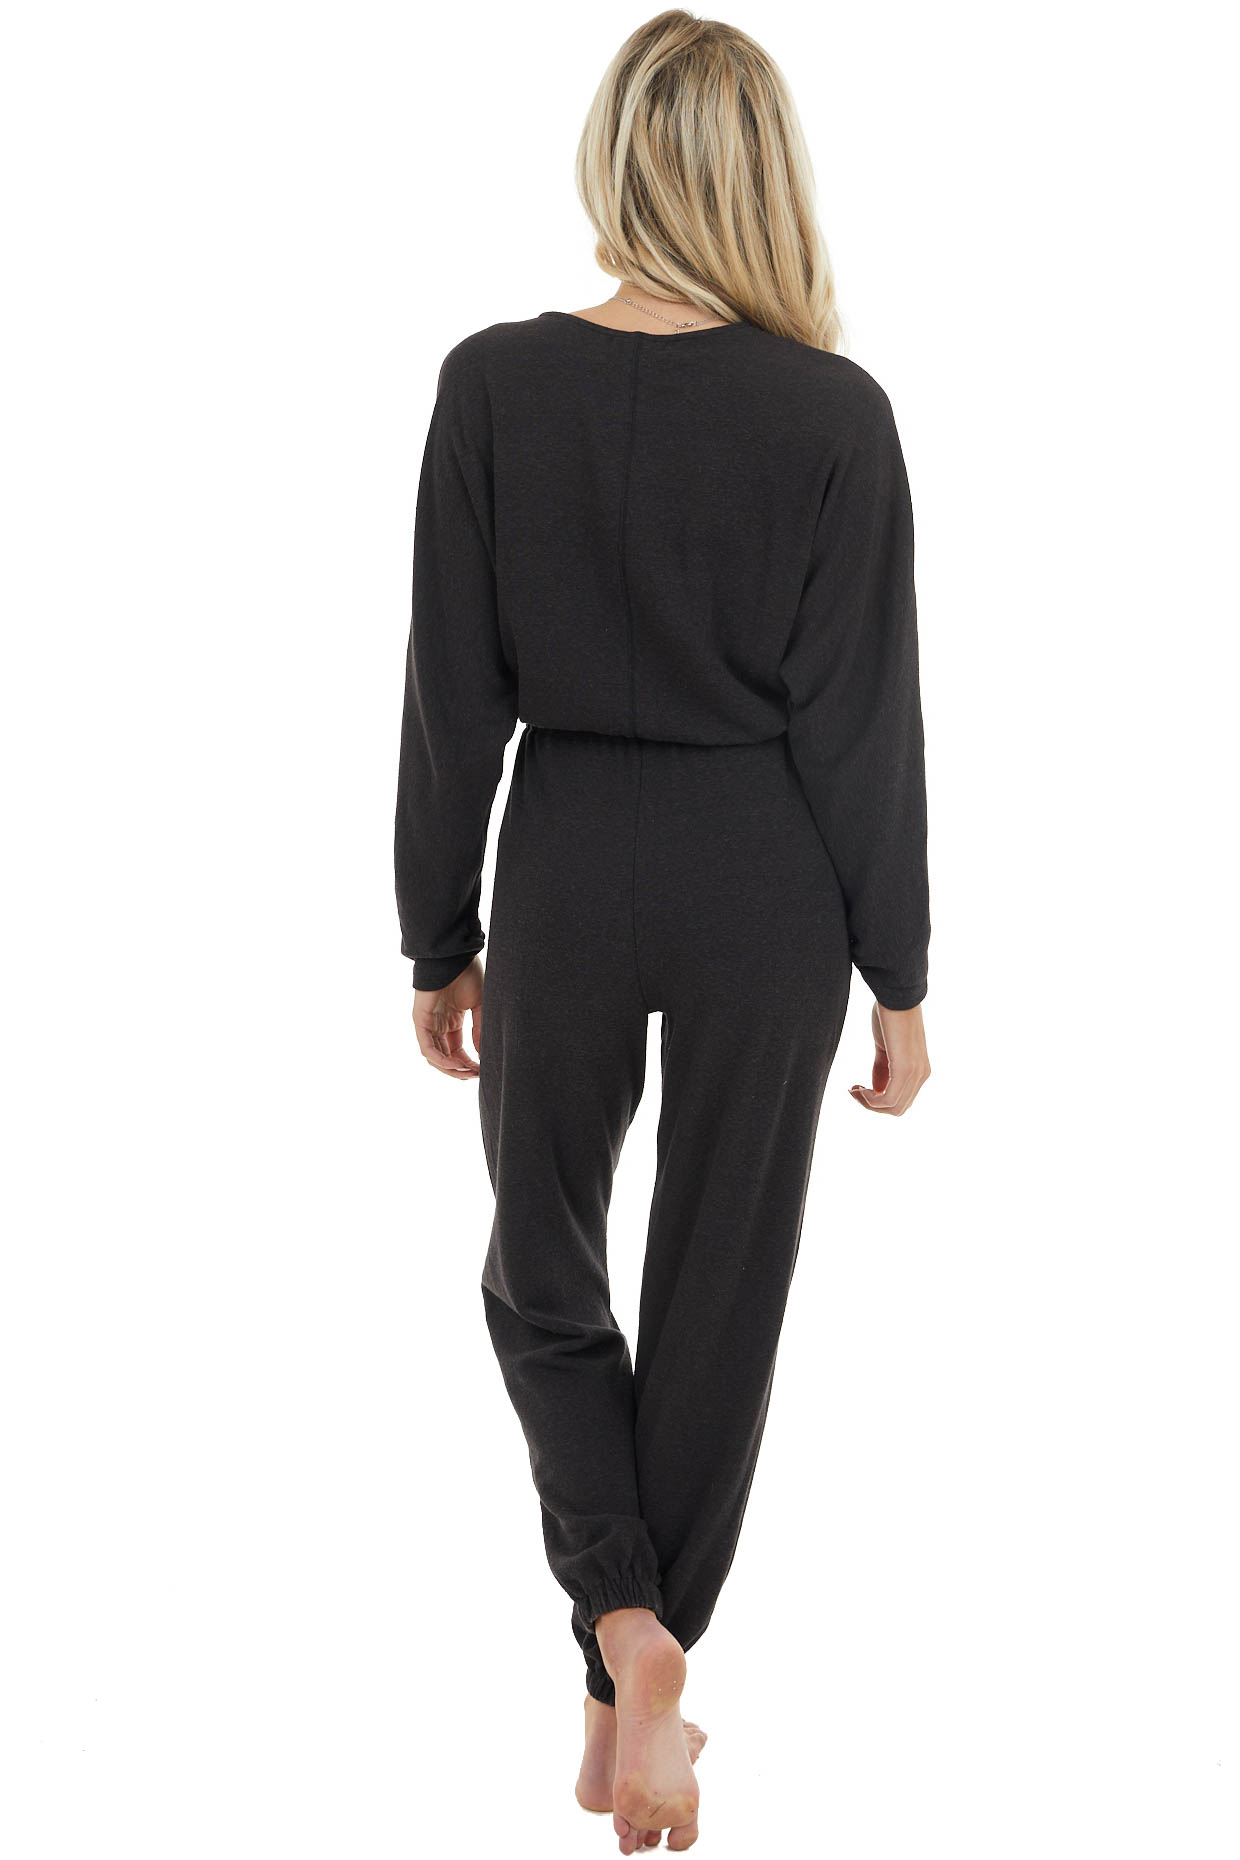 Black Surplice Jumpsuit with Tie Details and Pockets